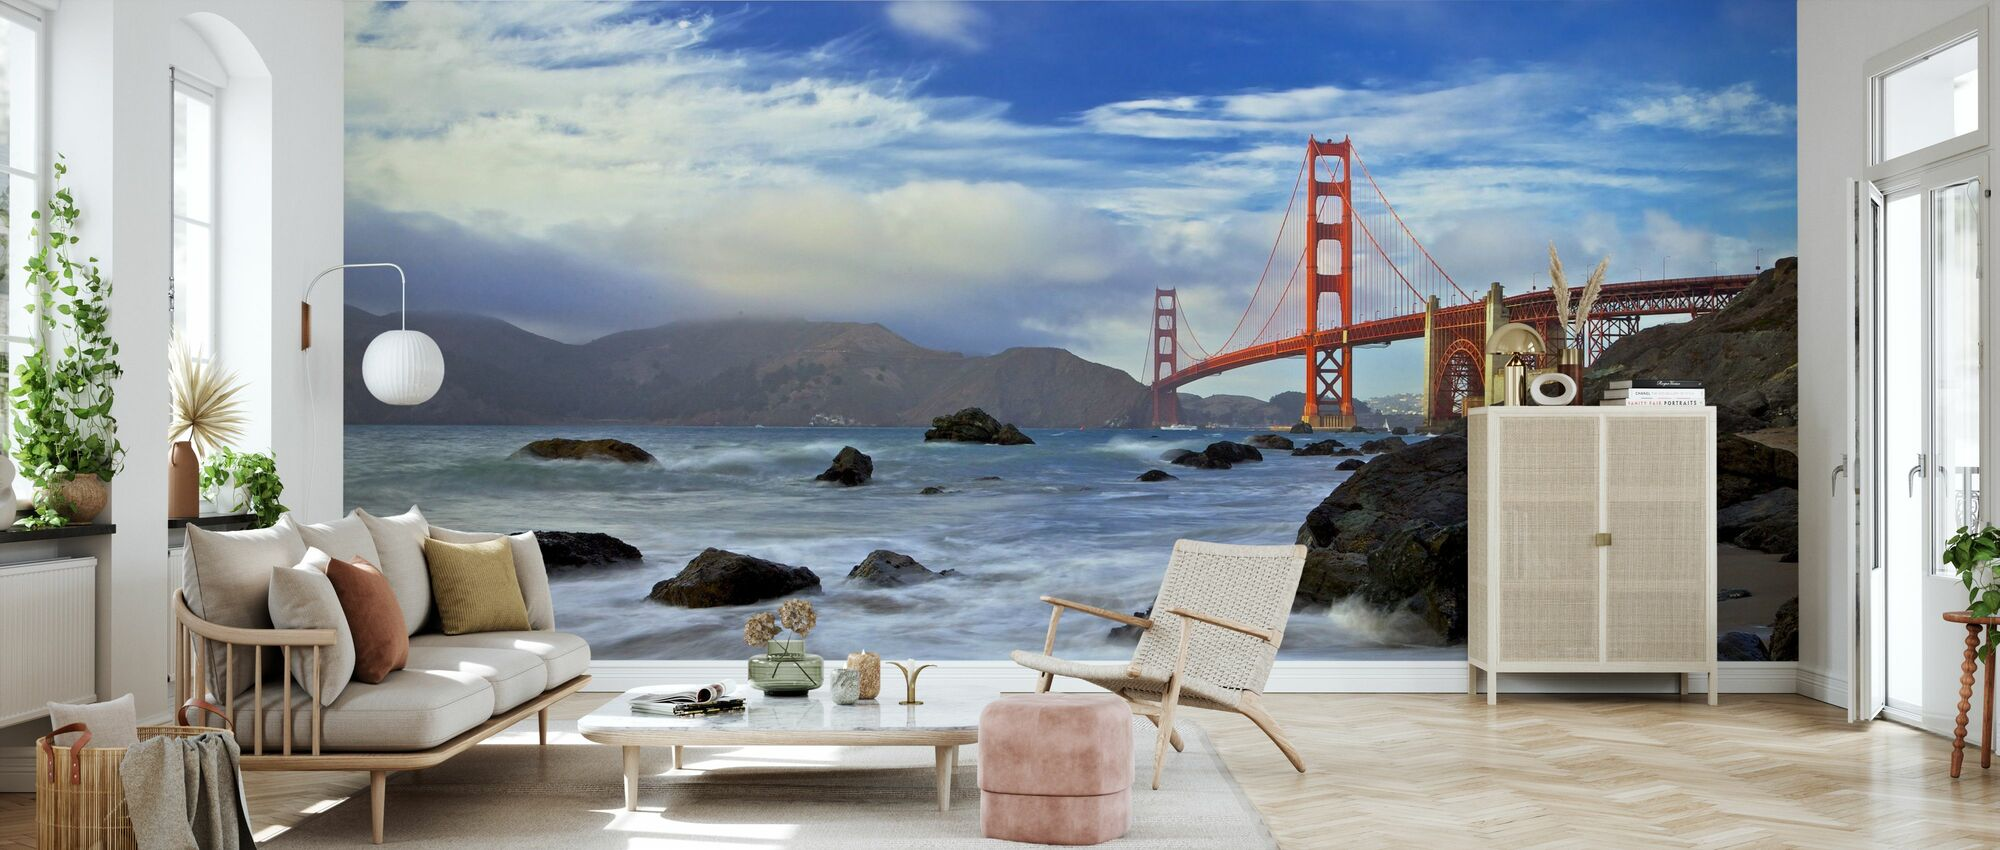 Home wall decor Non woven wallpaper Made to Measure Wall art decals Golden Gate Bridge Low San Francisco Feature Wall